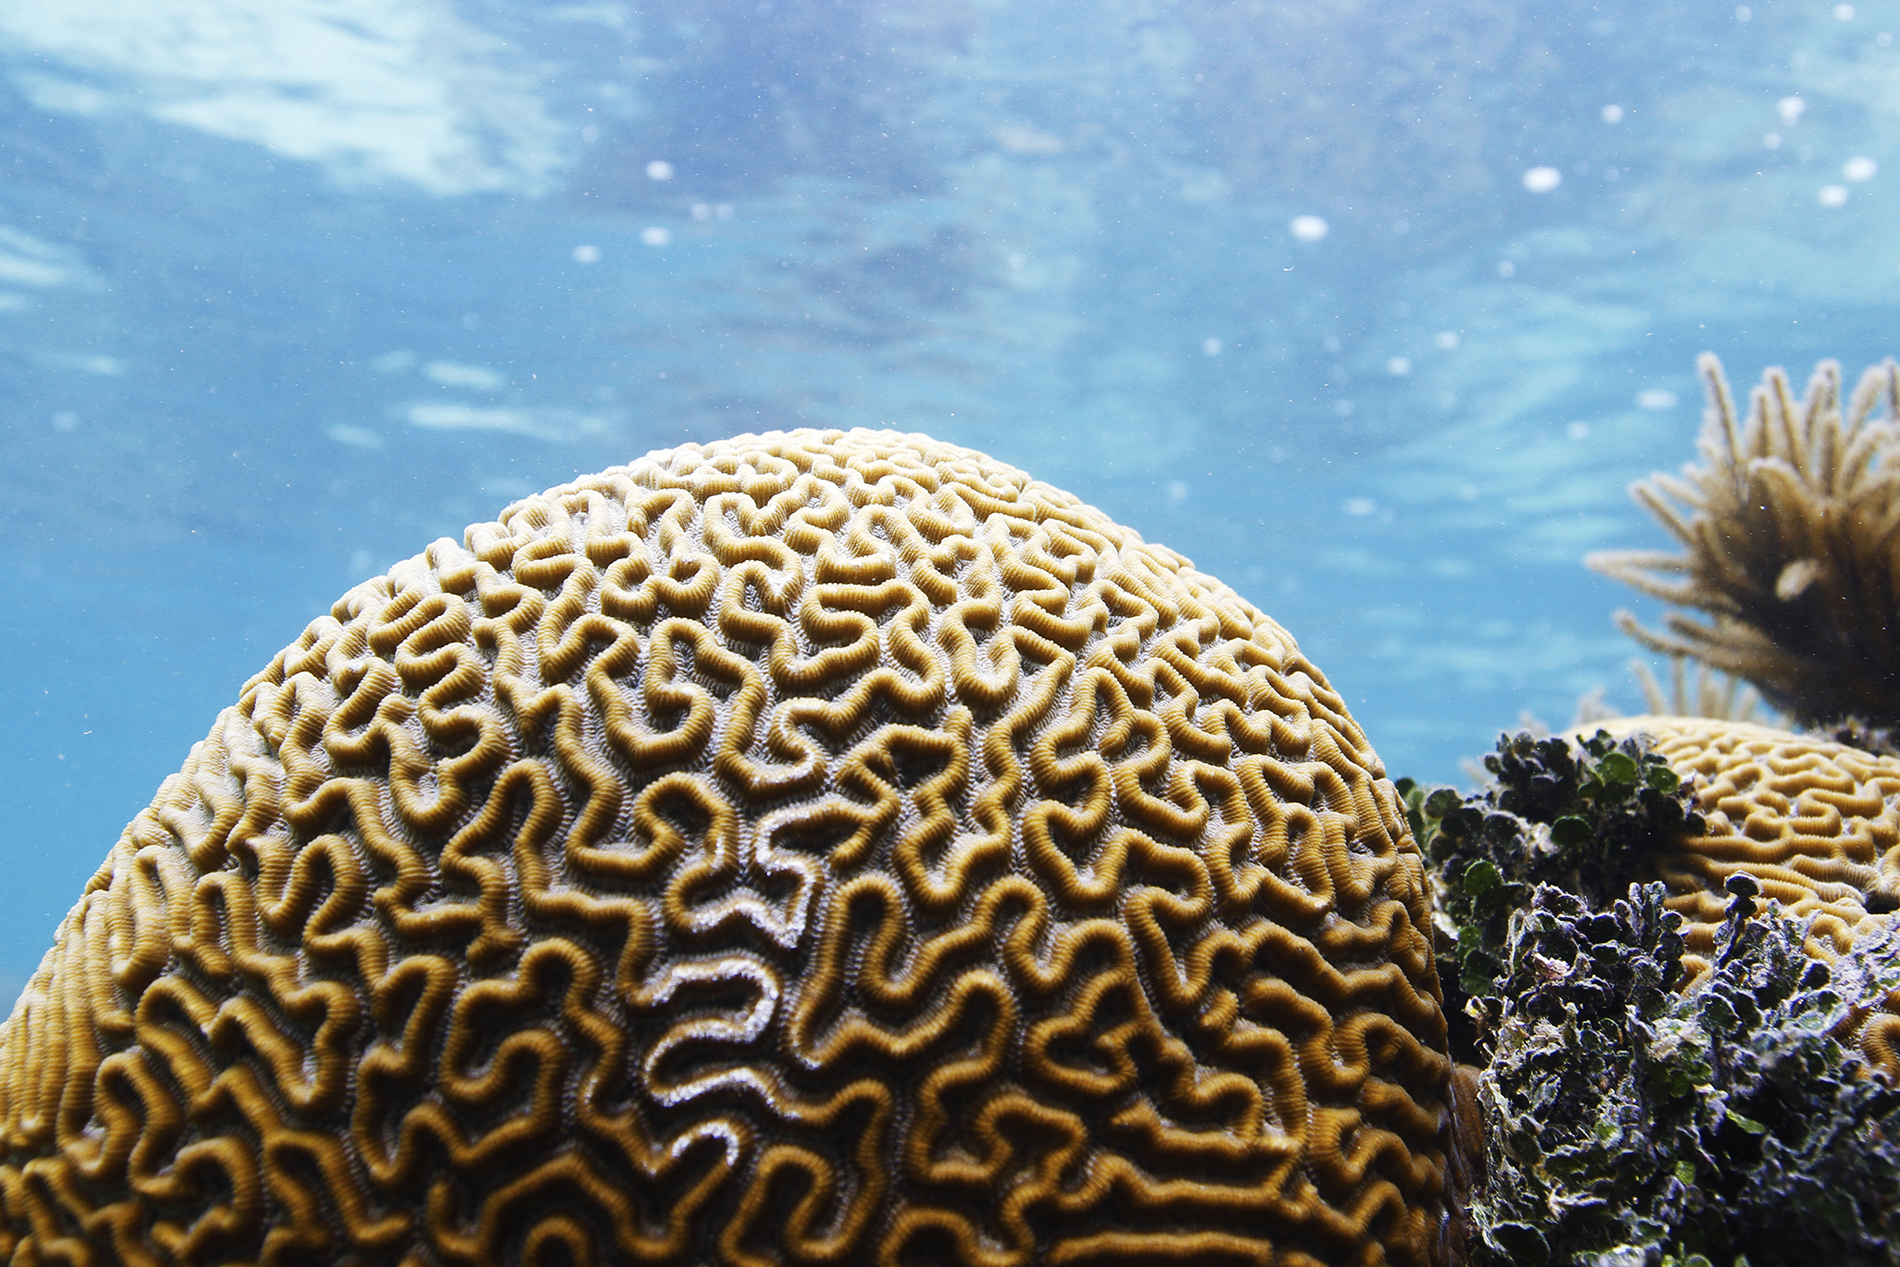 a large symmetrical brain coral in shallow waters off the coast of Placencia, Belize